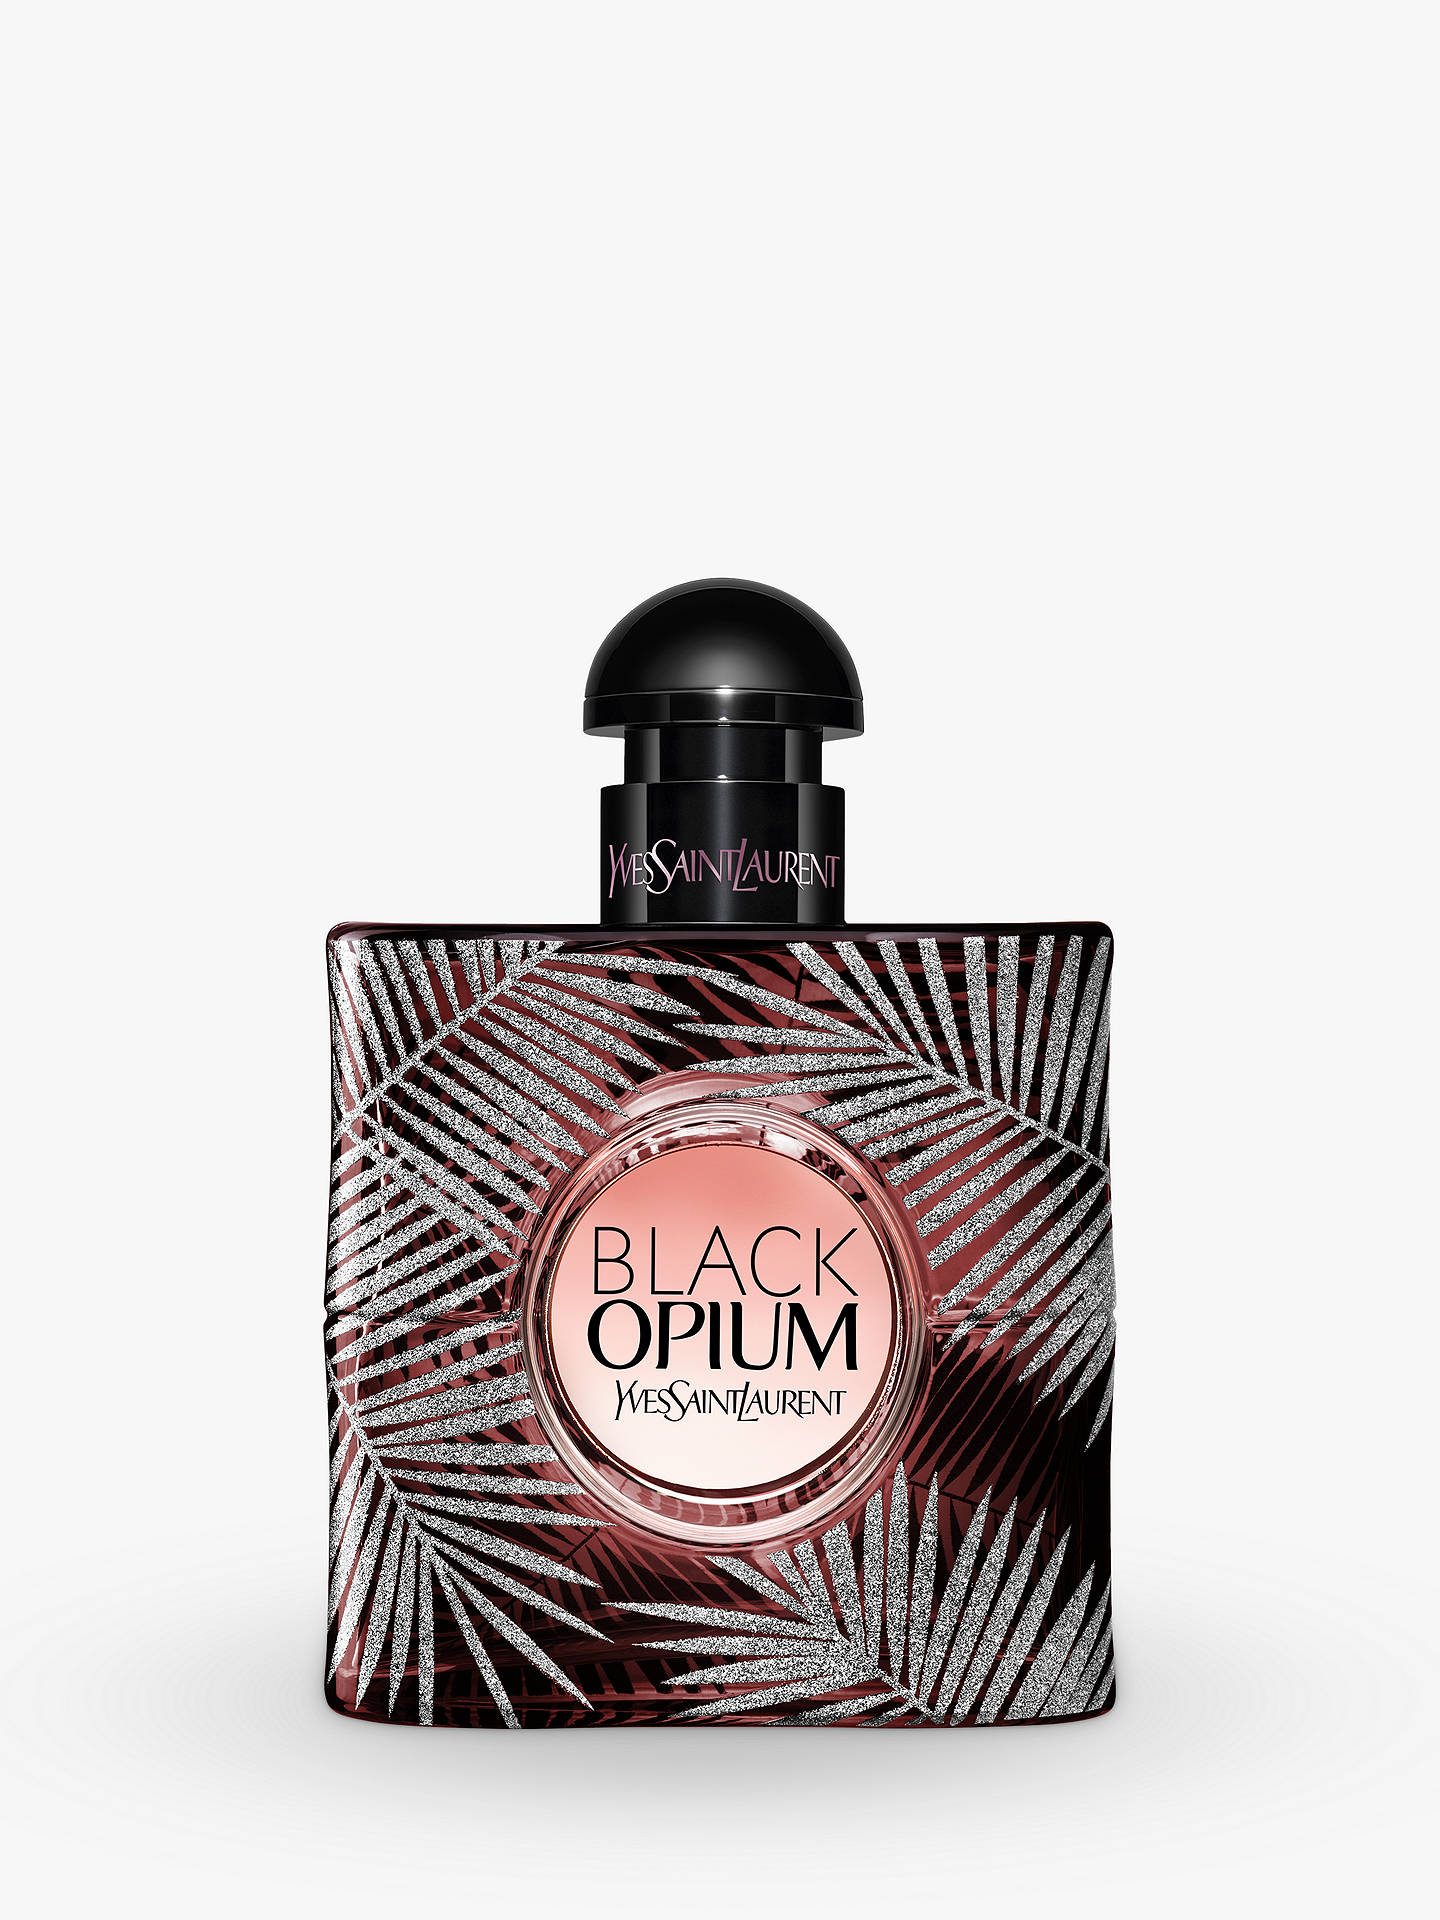 7ac1a0ac937 Buy Yves Saint Laurent Black Opium Exotic Illusion Eau de Parfum Limited  Edition, 50ml Online ...